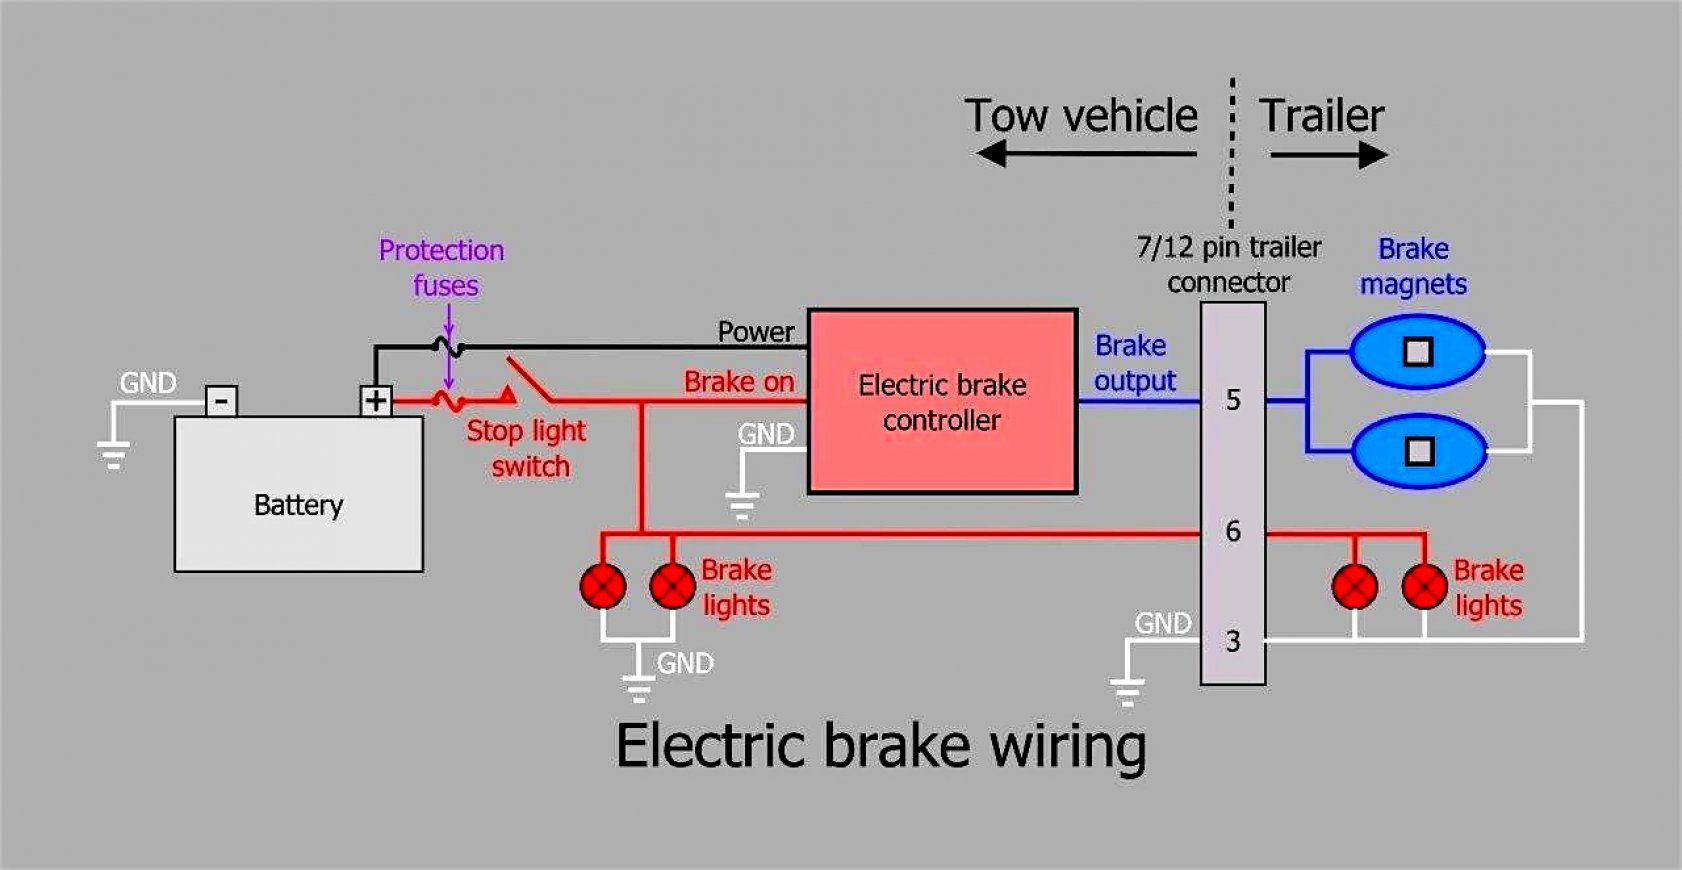 Rv Electric Brake Wiring Diagram | Manual E-Books - Trailer Electric Brake Controller Wiring Diagram